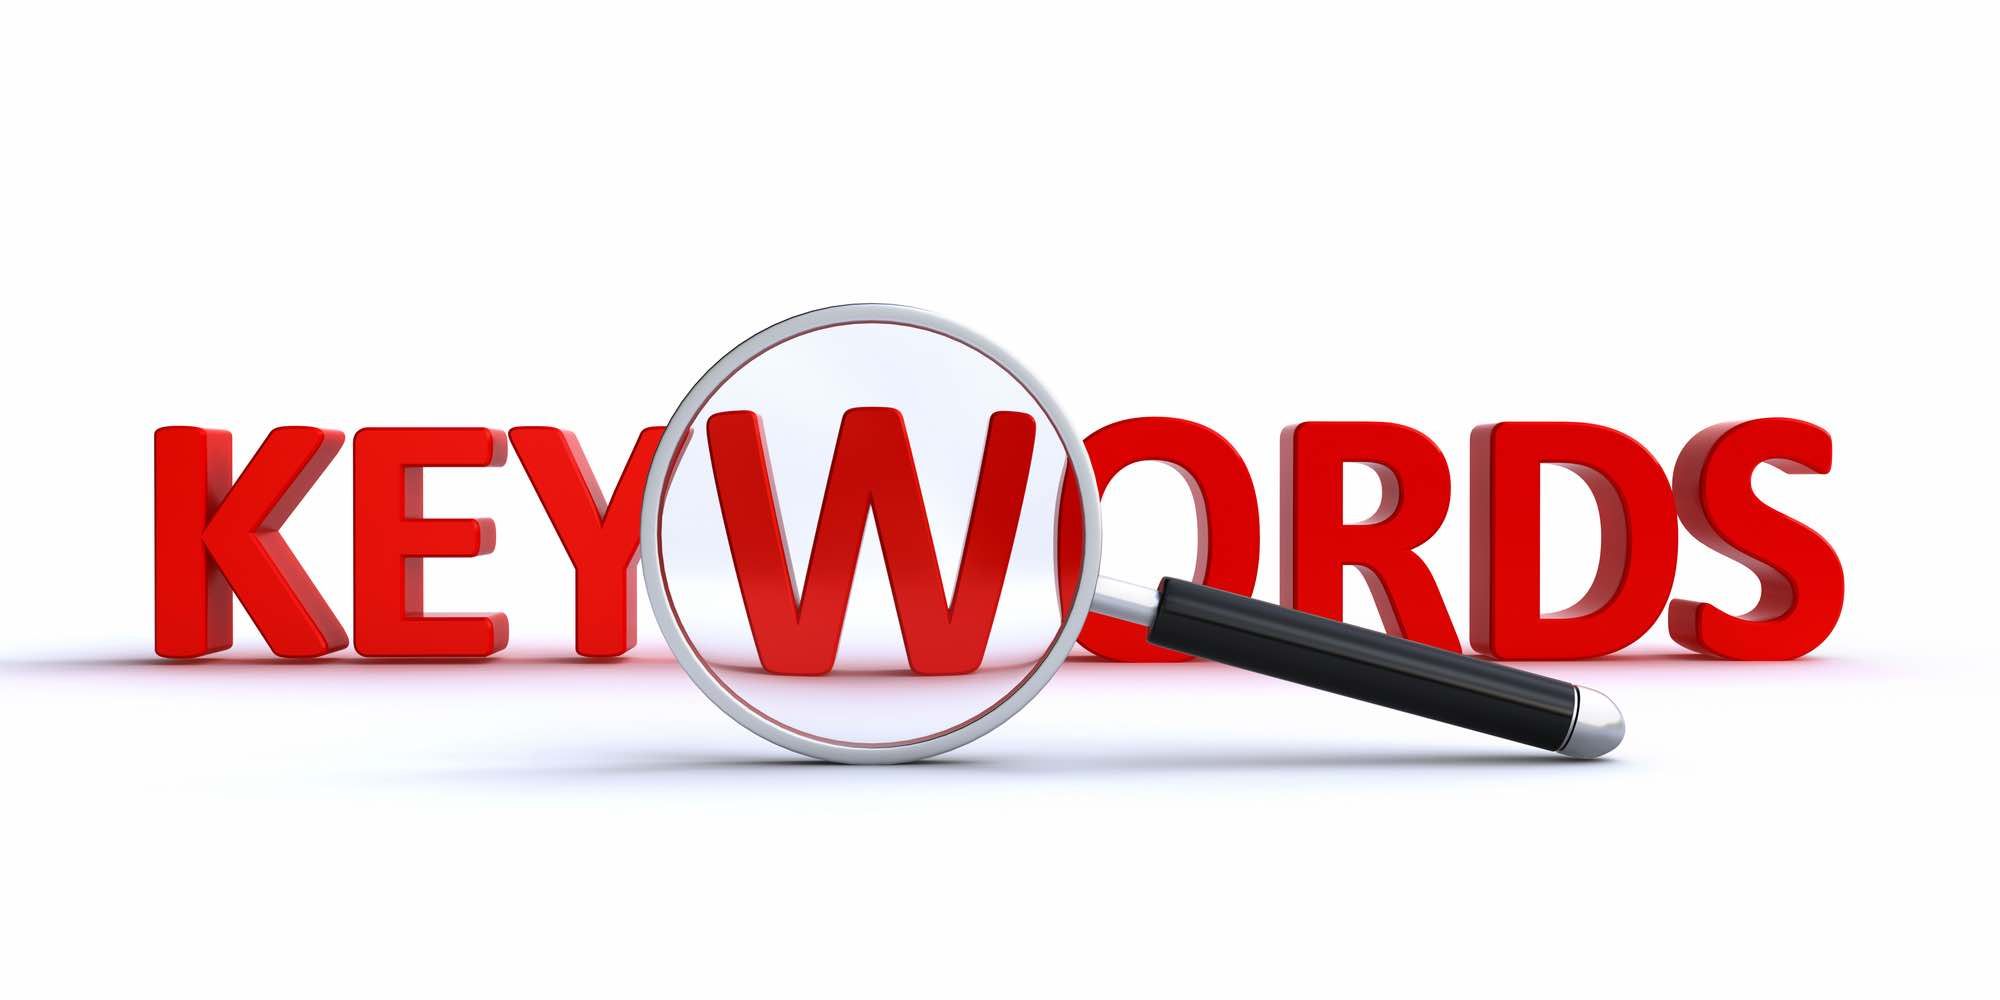 Embedding keywords in headings, captions, and urls can improve Google ranking.